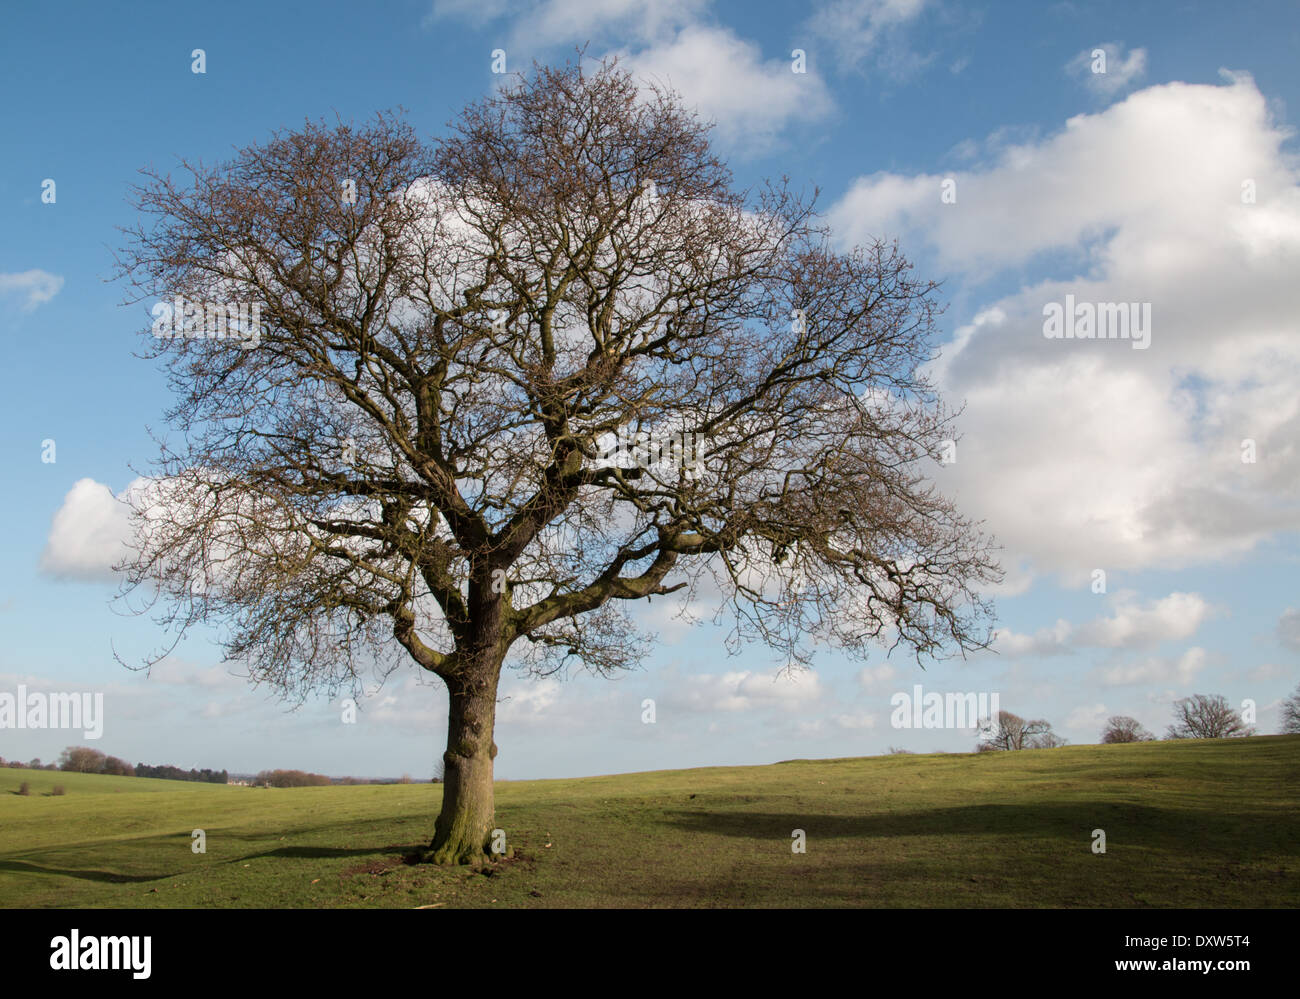 Tree Without Leaves Stock Photos Amp Tree Without Leaves